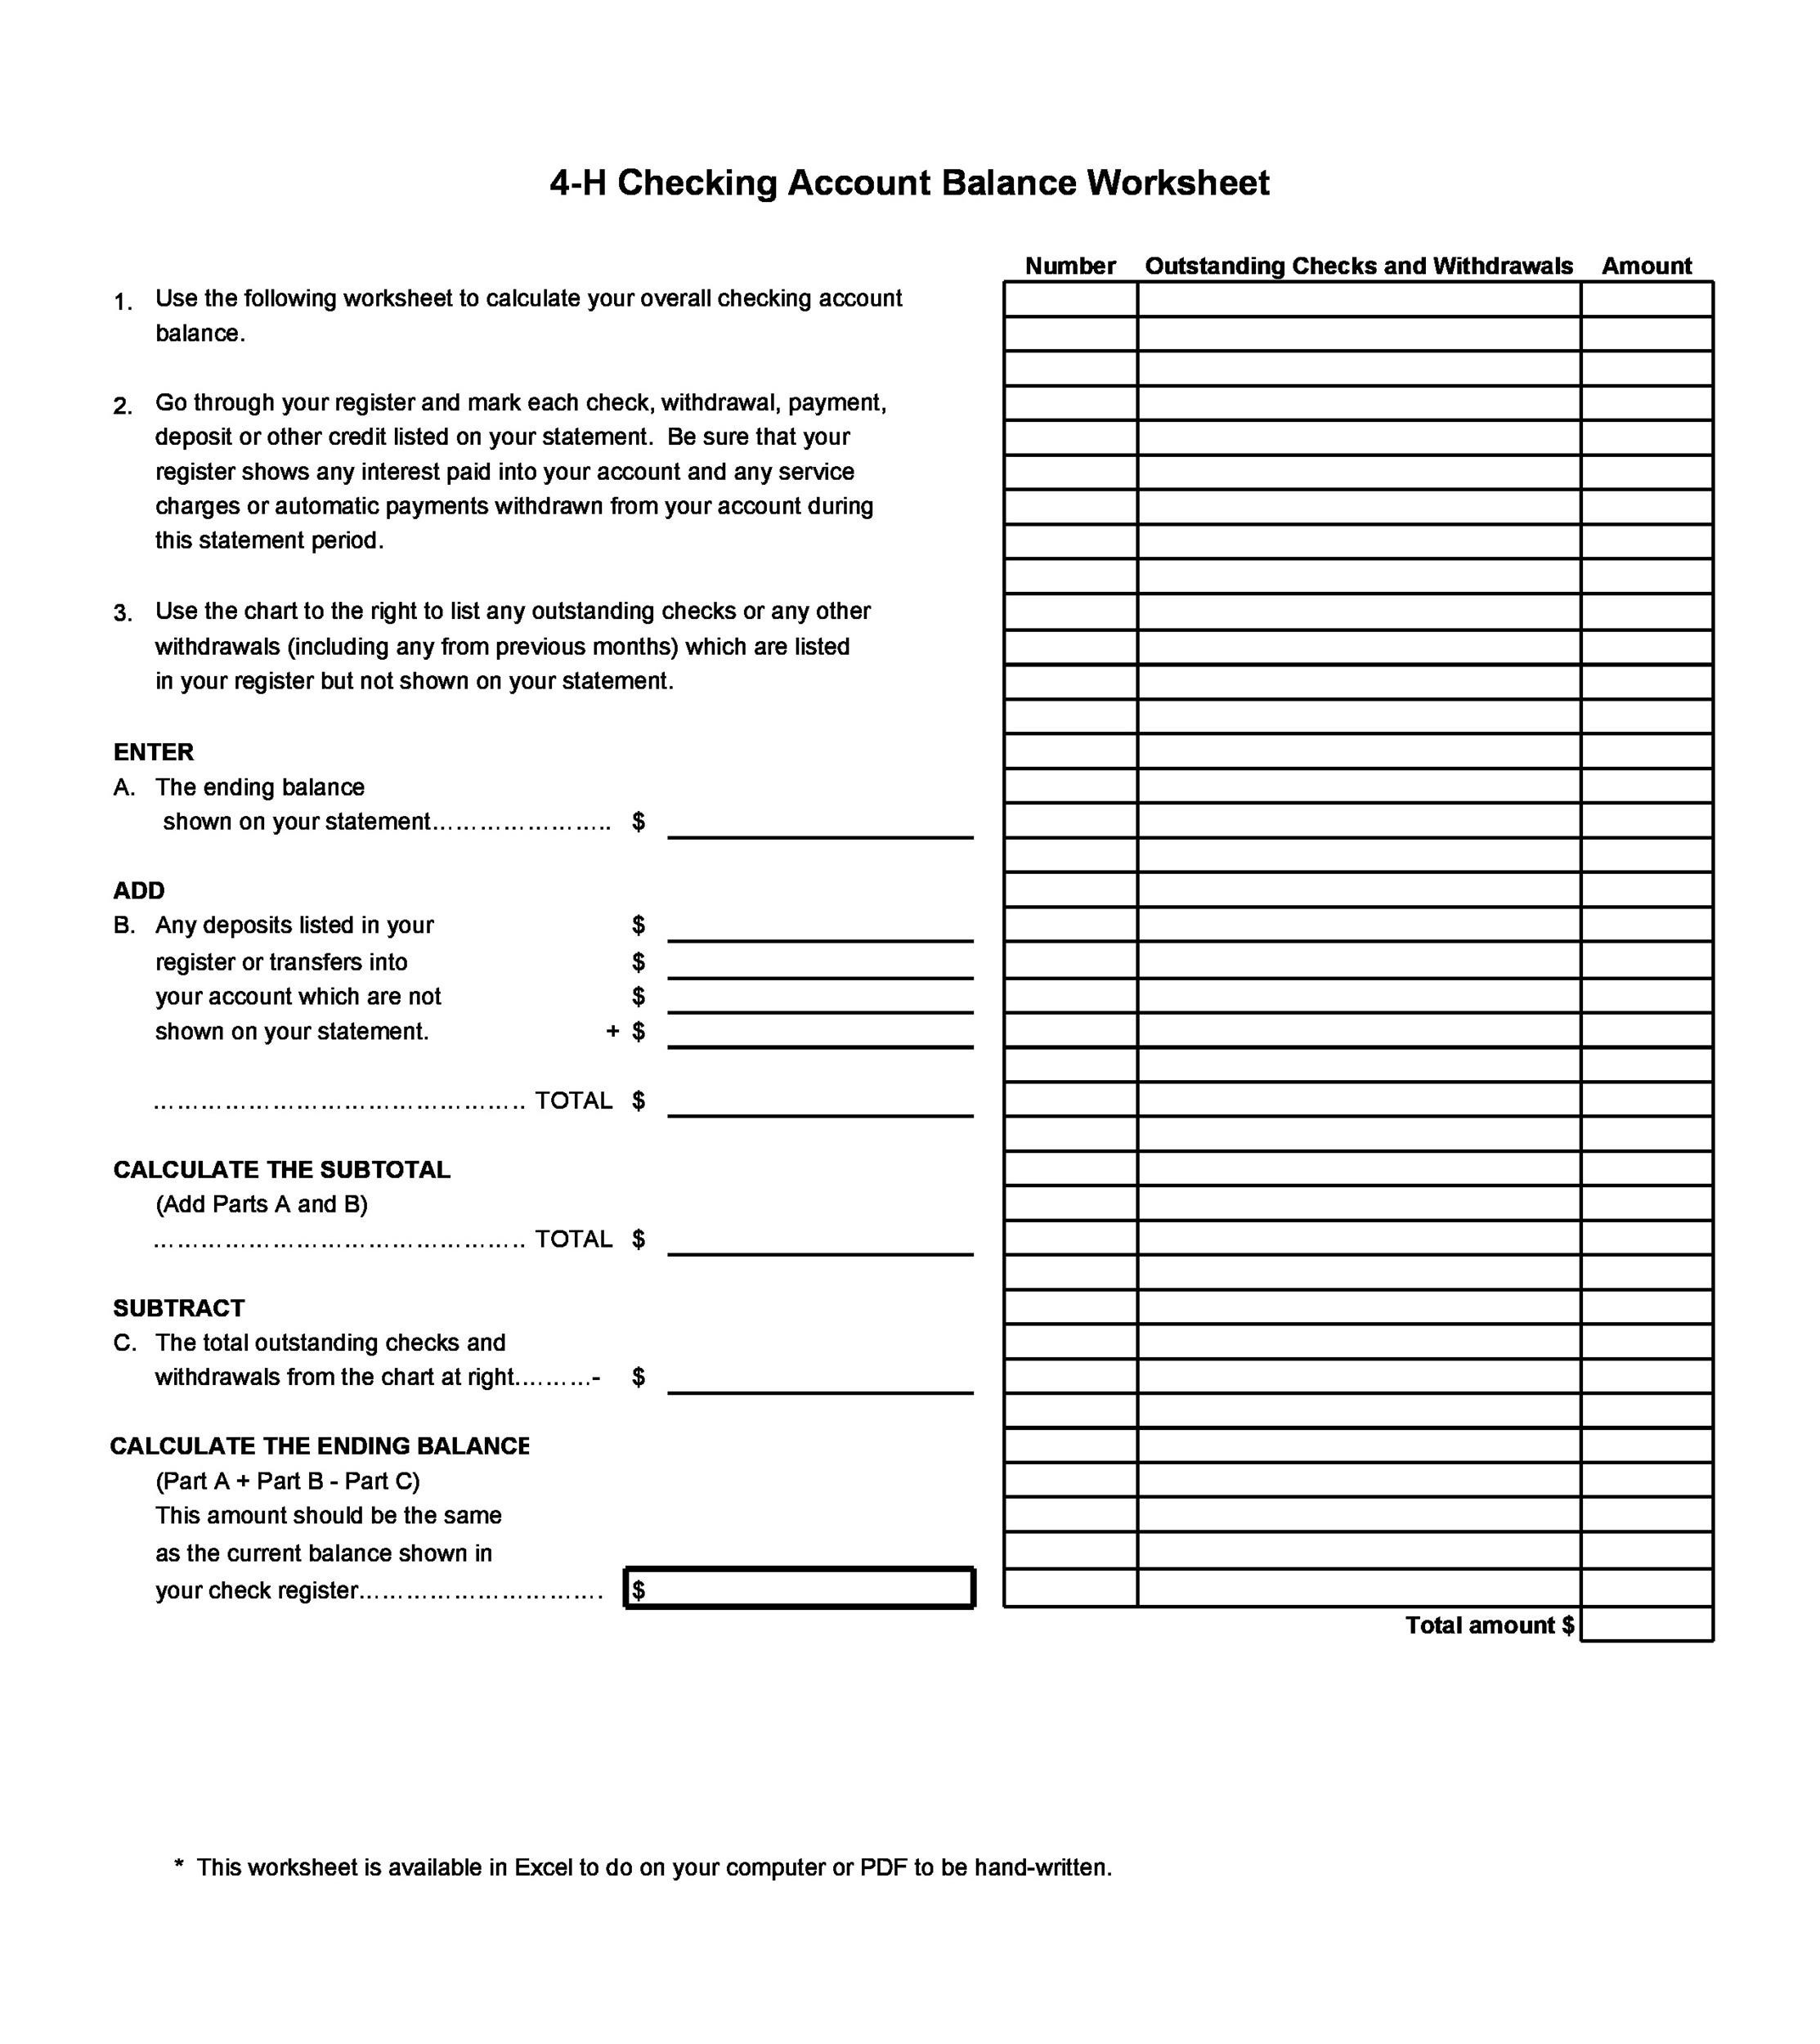 37 Checkbook Register Templates 100 Free Printable Template Lab – Checkbook Balance Worksheet